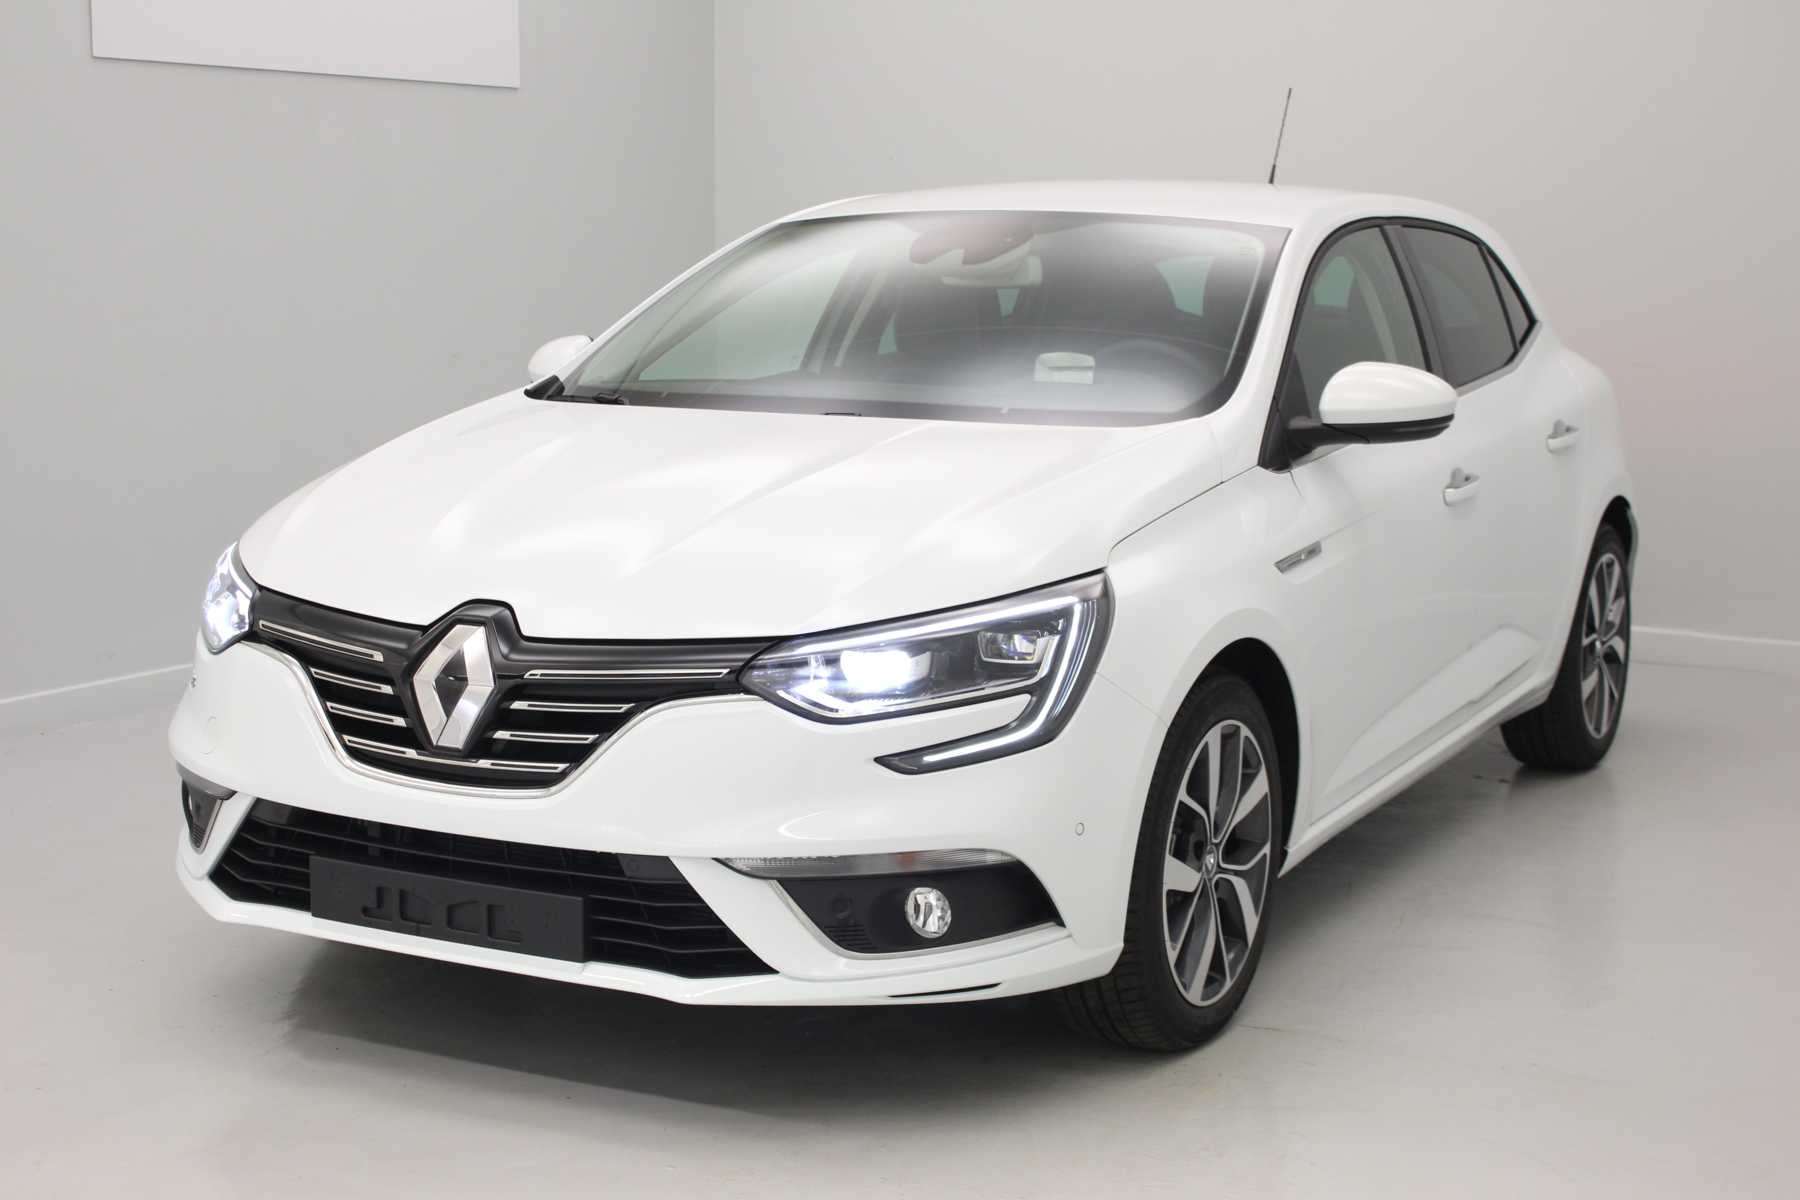 RENAULT Nouvelle Mégane IV Berline dCi 110 Energy Intens EDC Blanc Glacier + Pack Easy Parking avec options